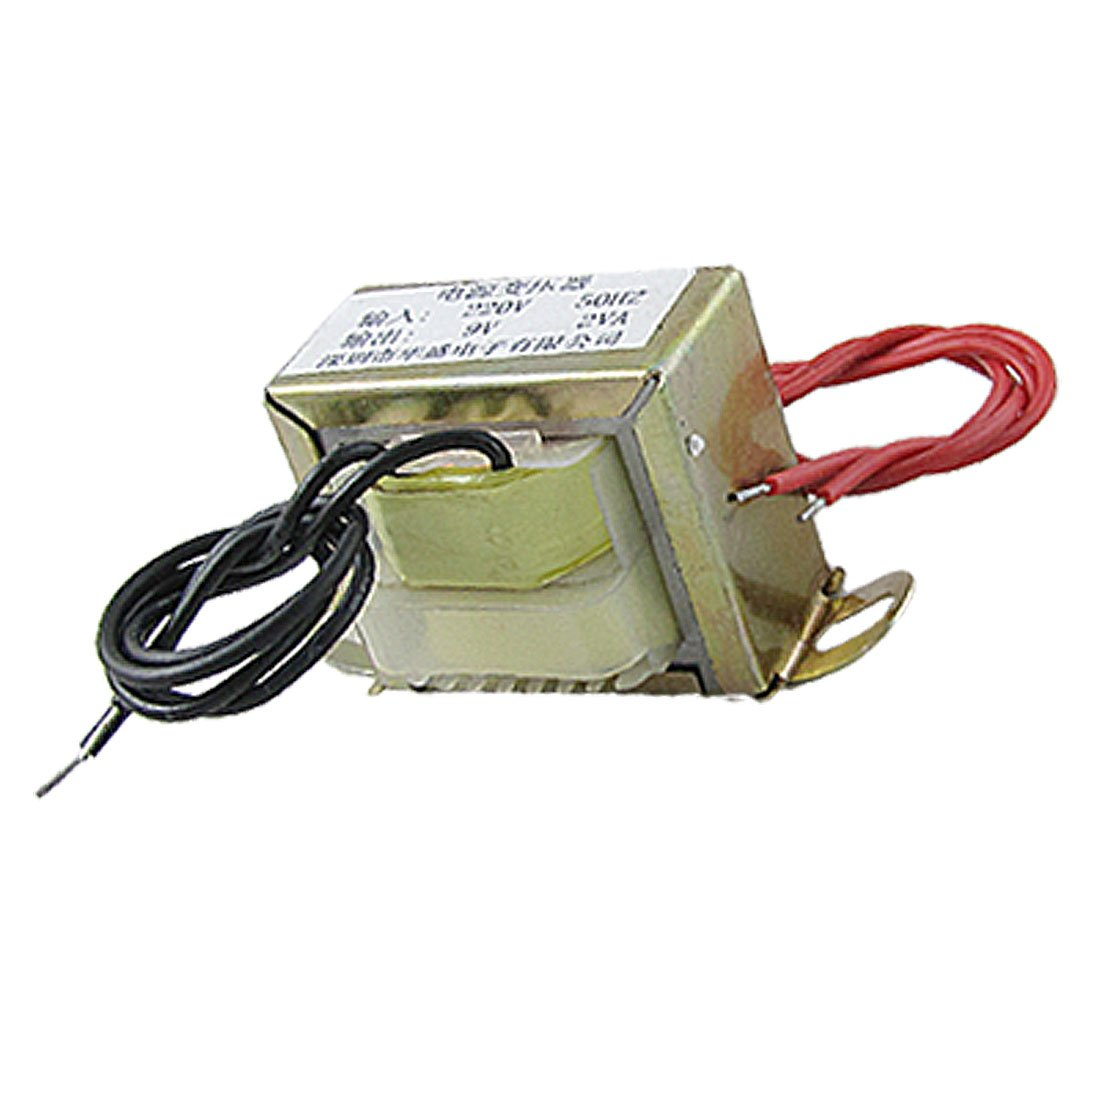 9V 2VA Output EI Core Vertical Mount Electric Power Transformer sourcingmap a11110300ux0116